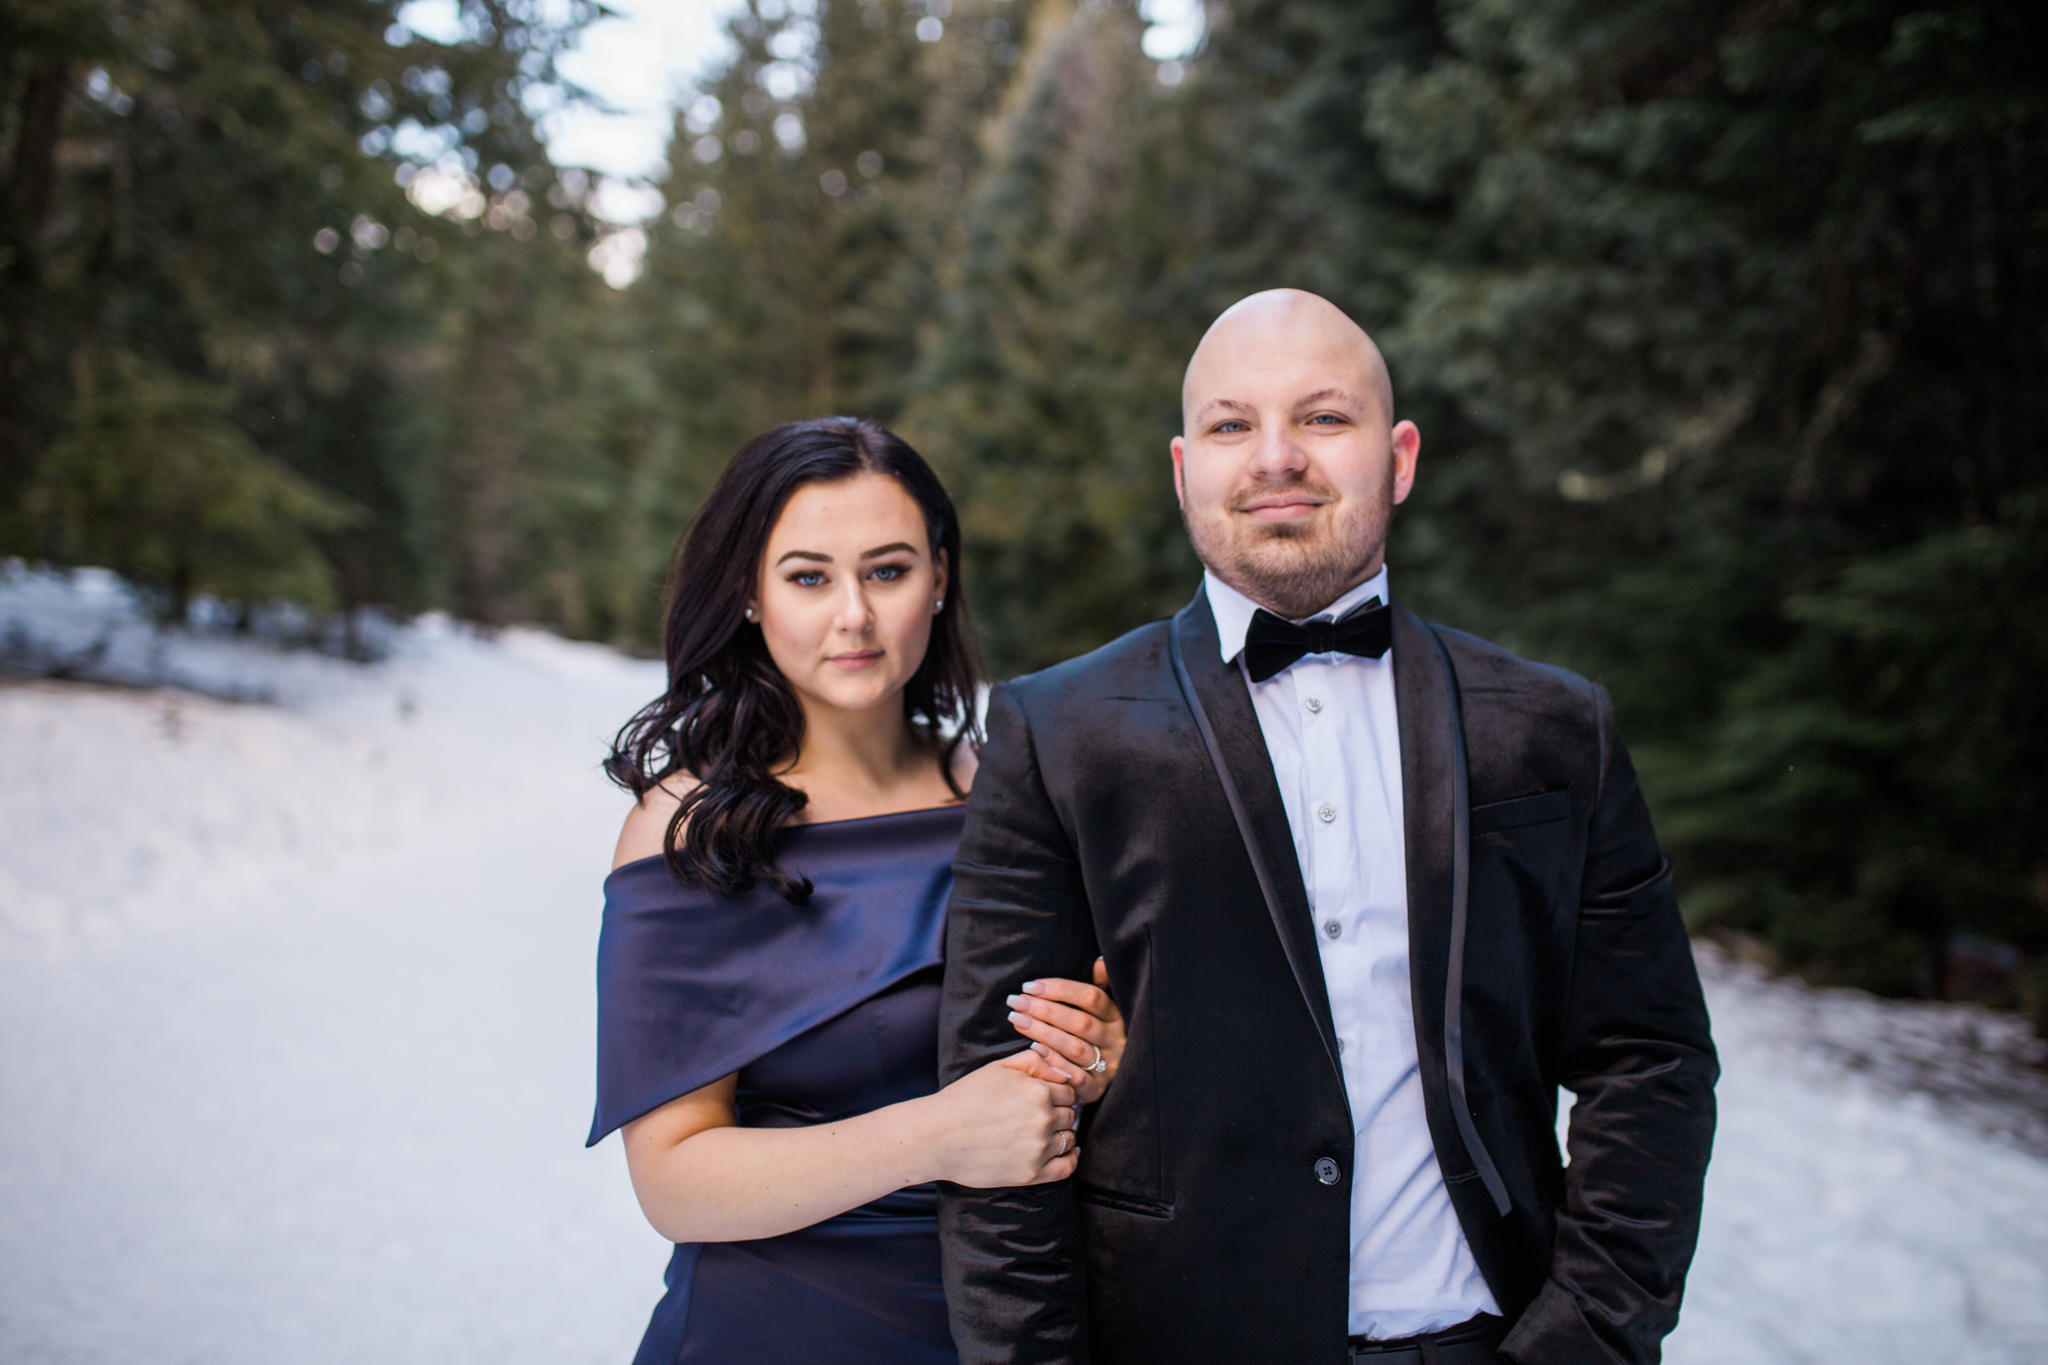 Trillium Lake Snowy Mt Hood, Oregon Engagement Session11.jpg